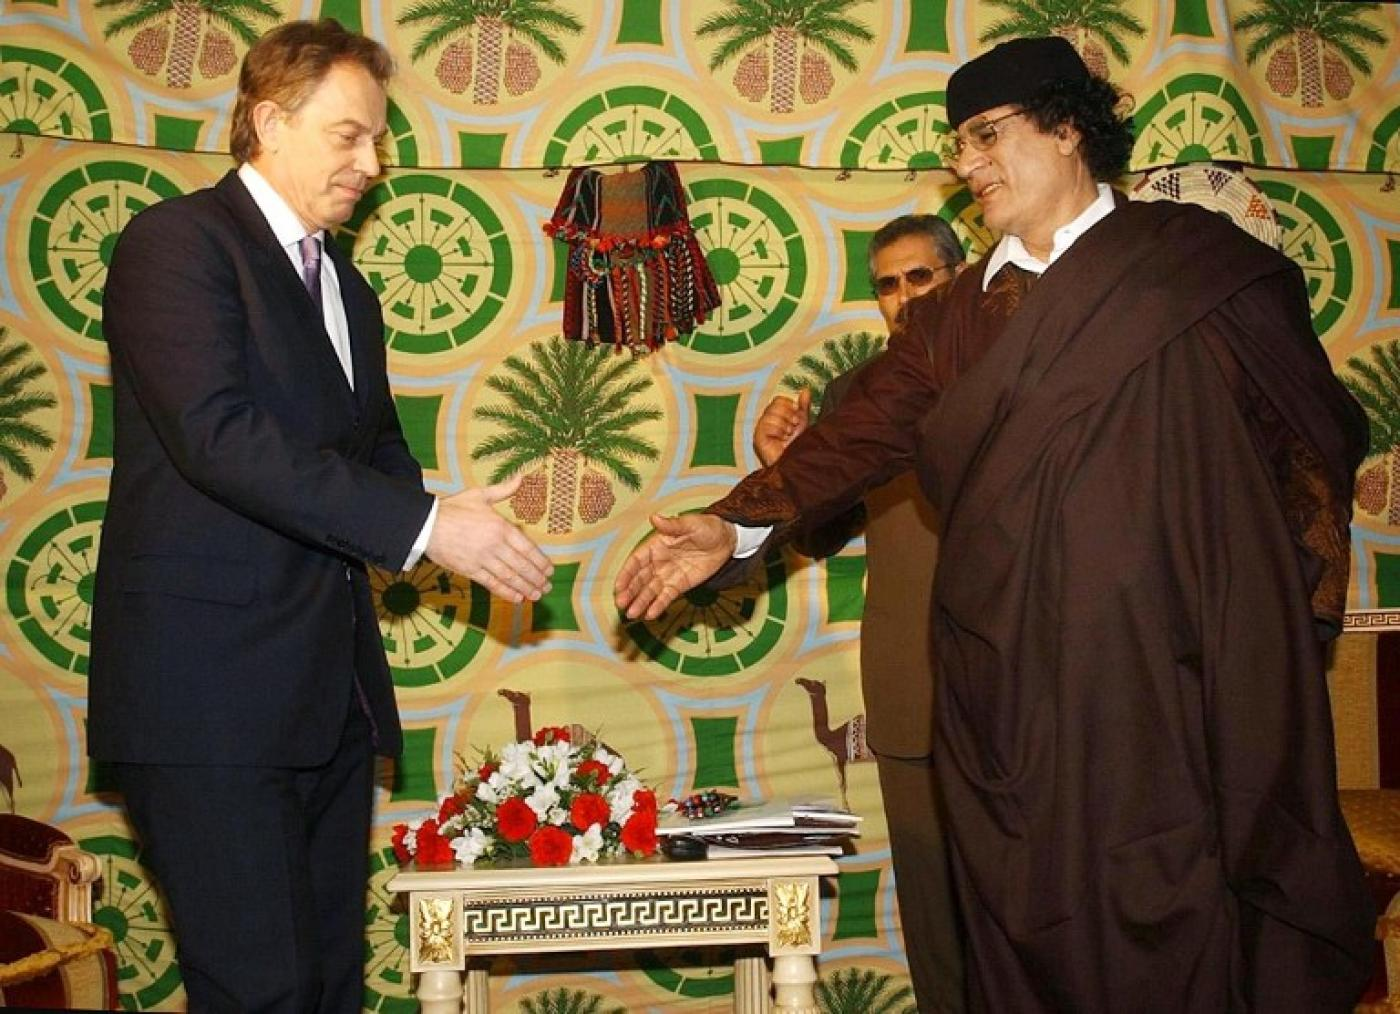 Blair and Gaddafi